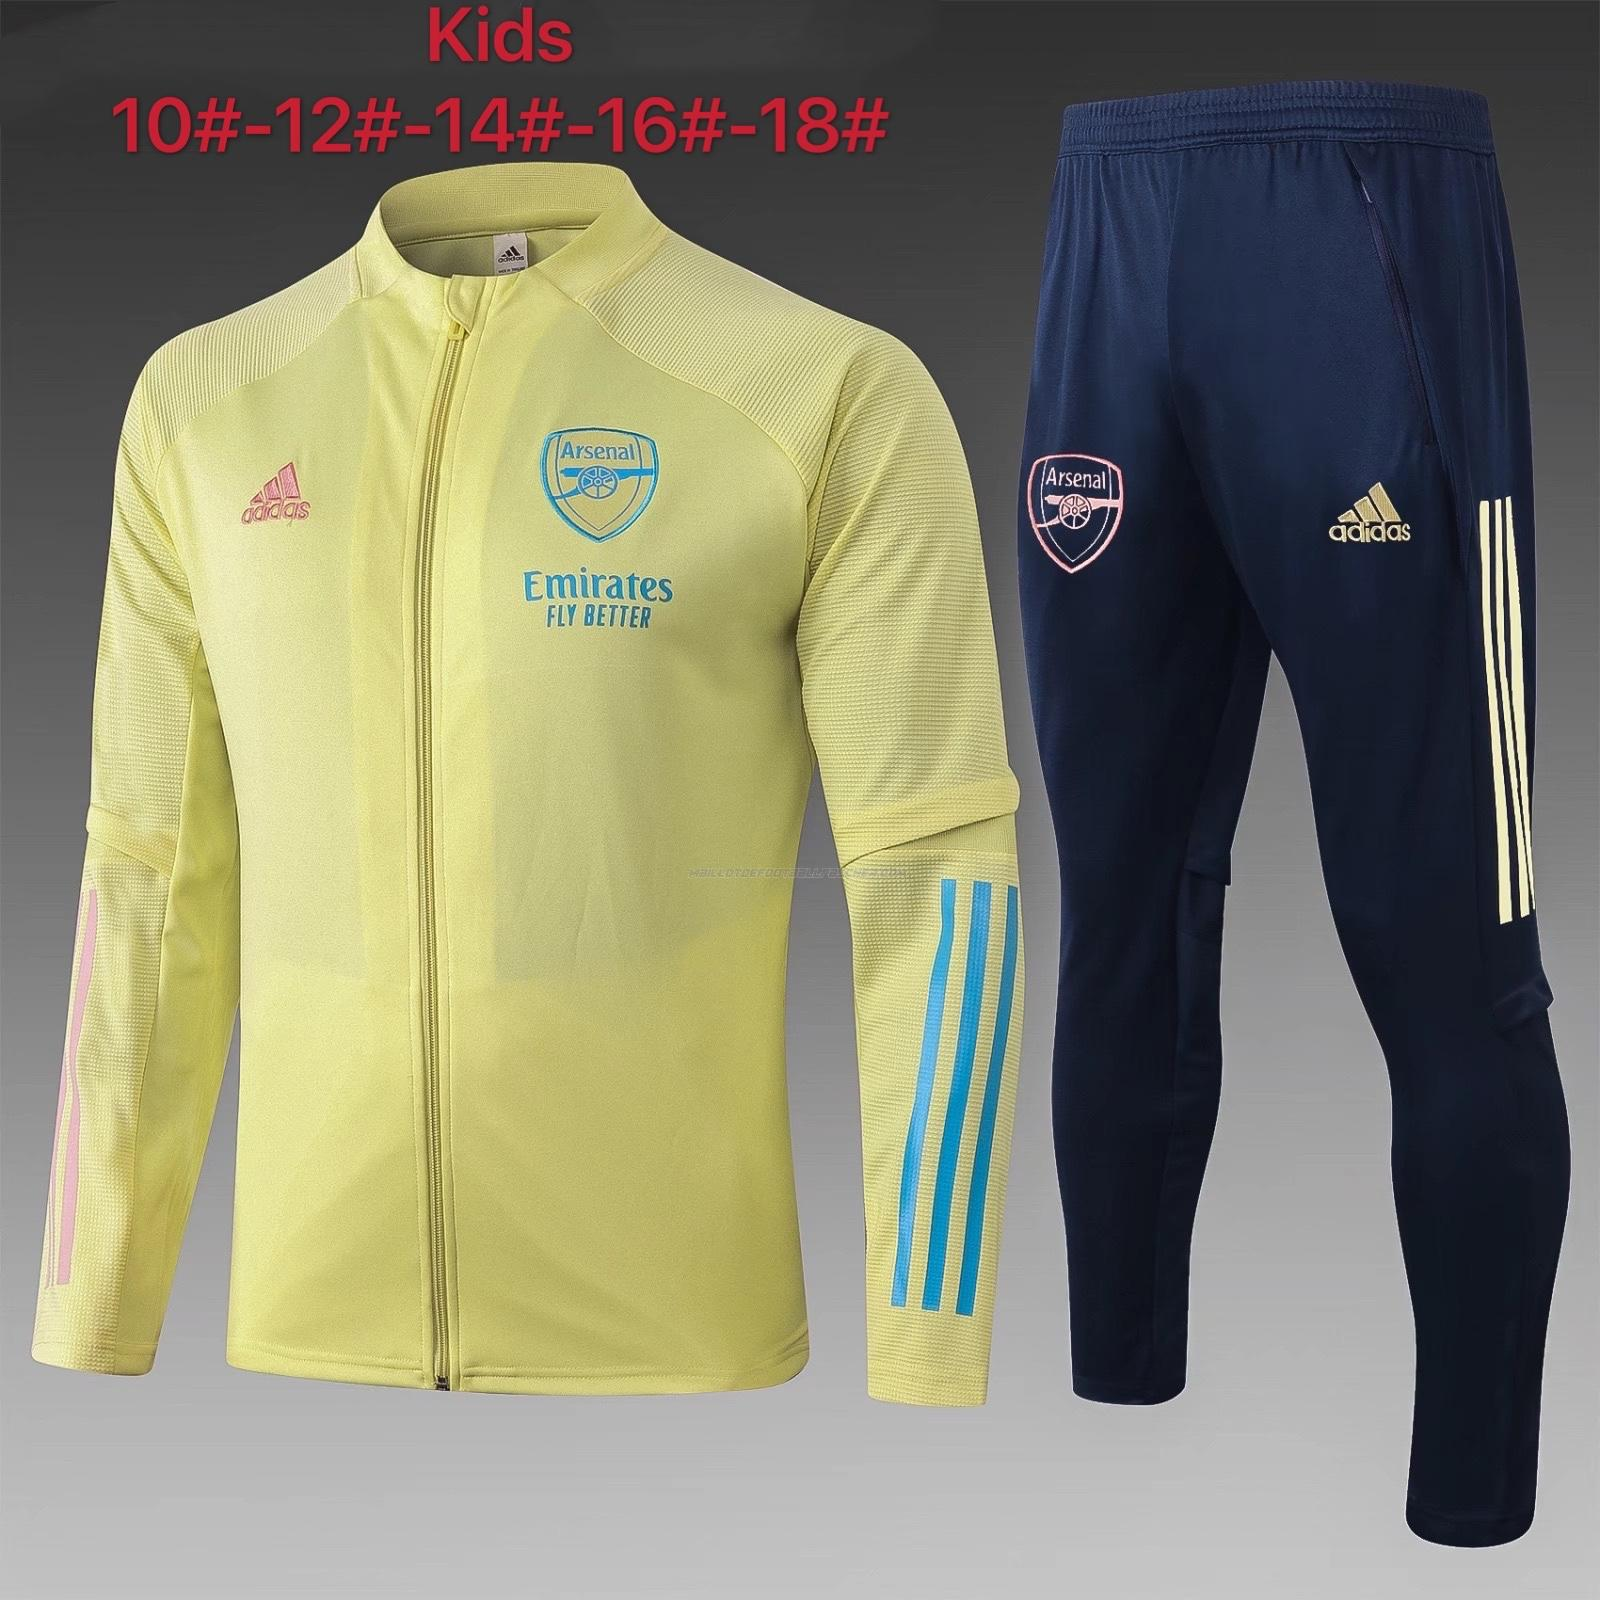 veste enfant arsenal jaune 2021